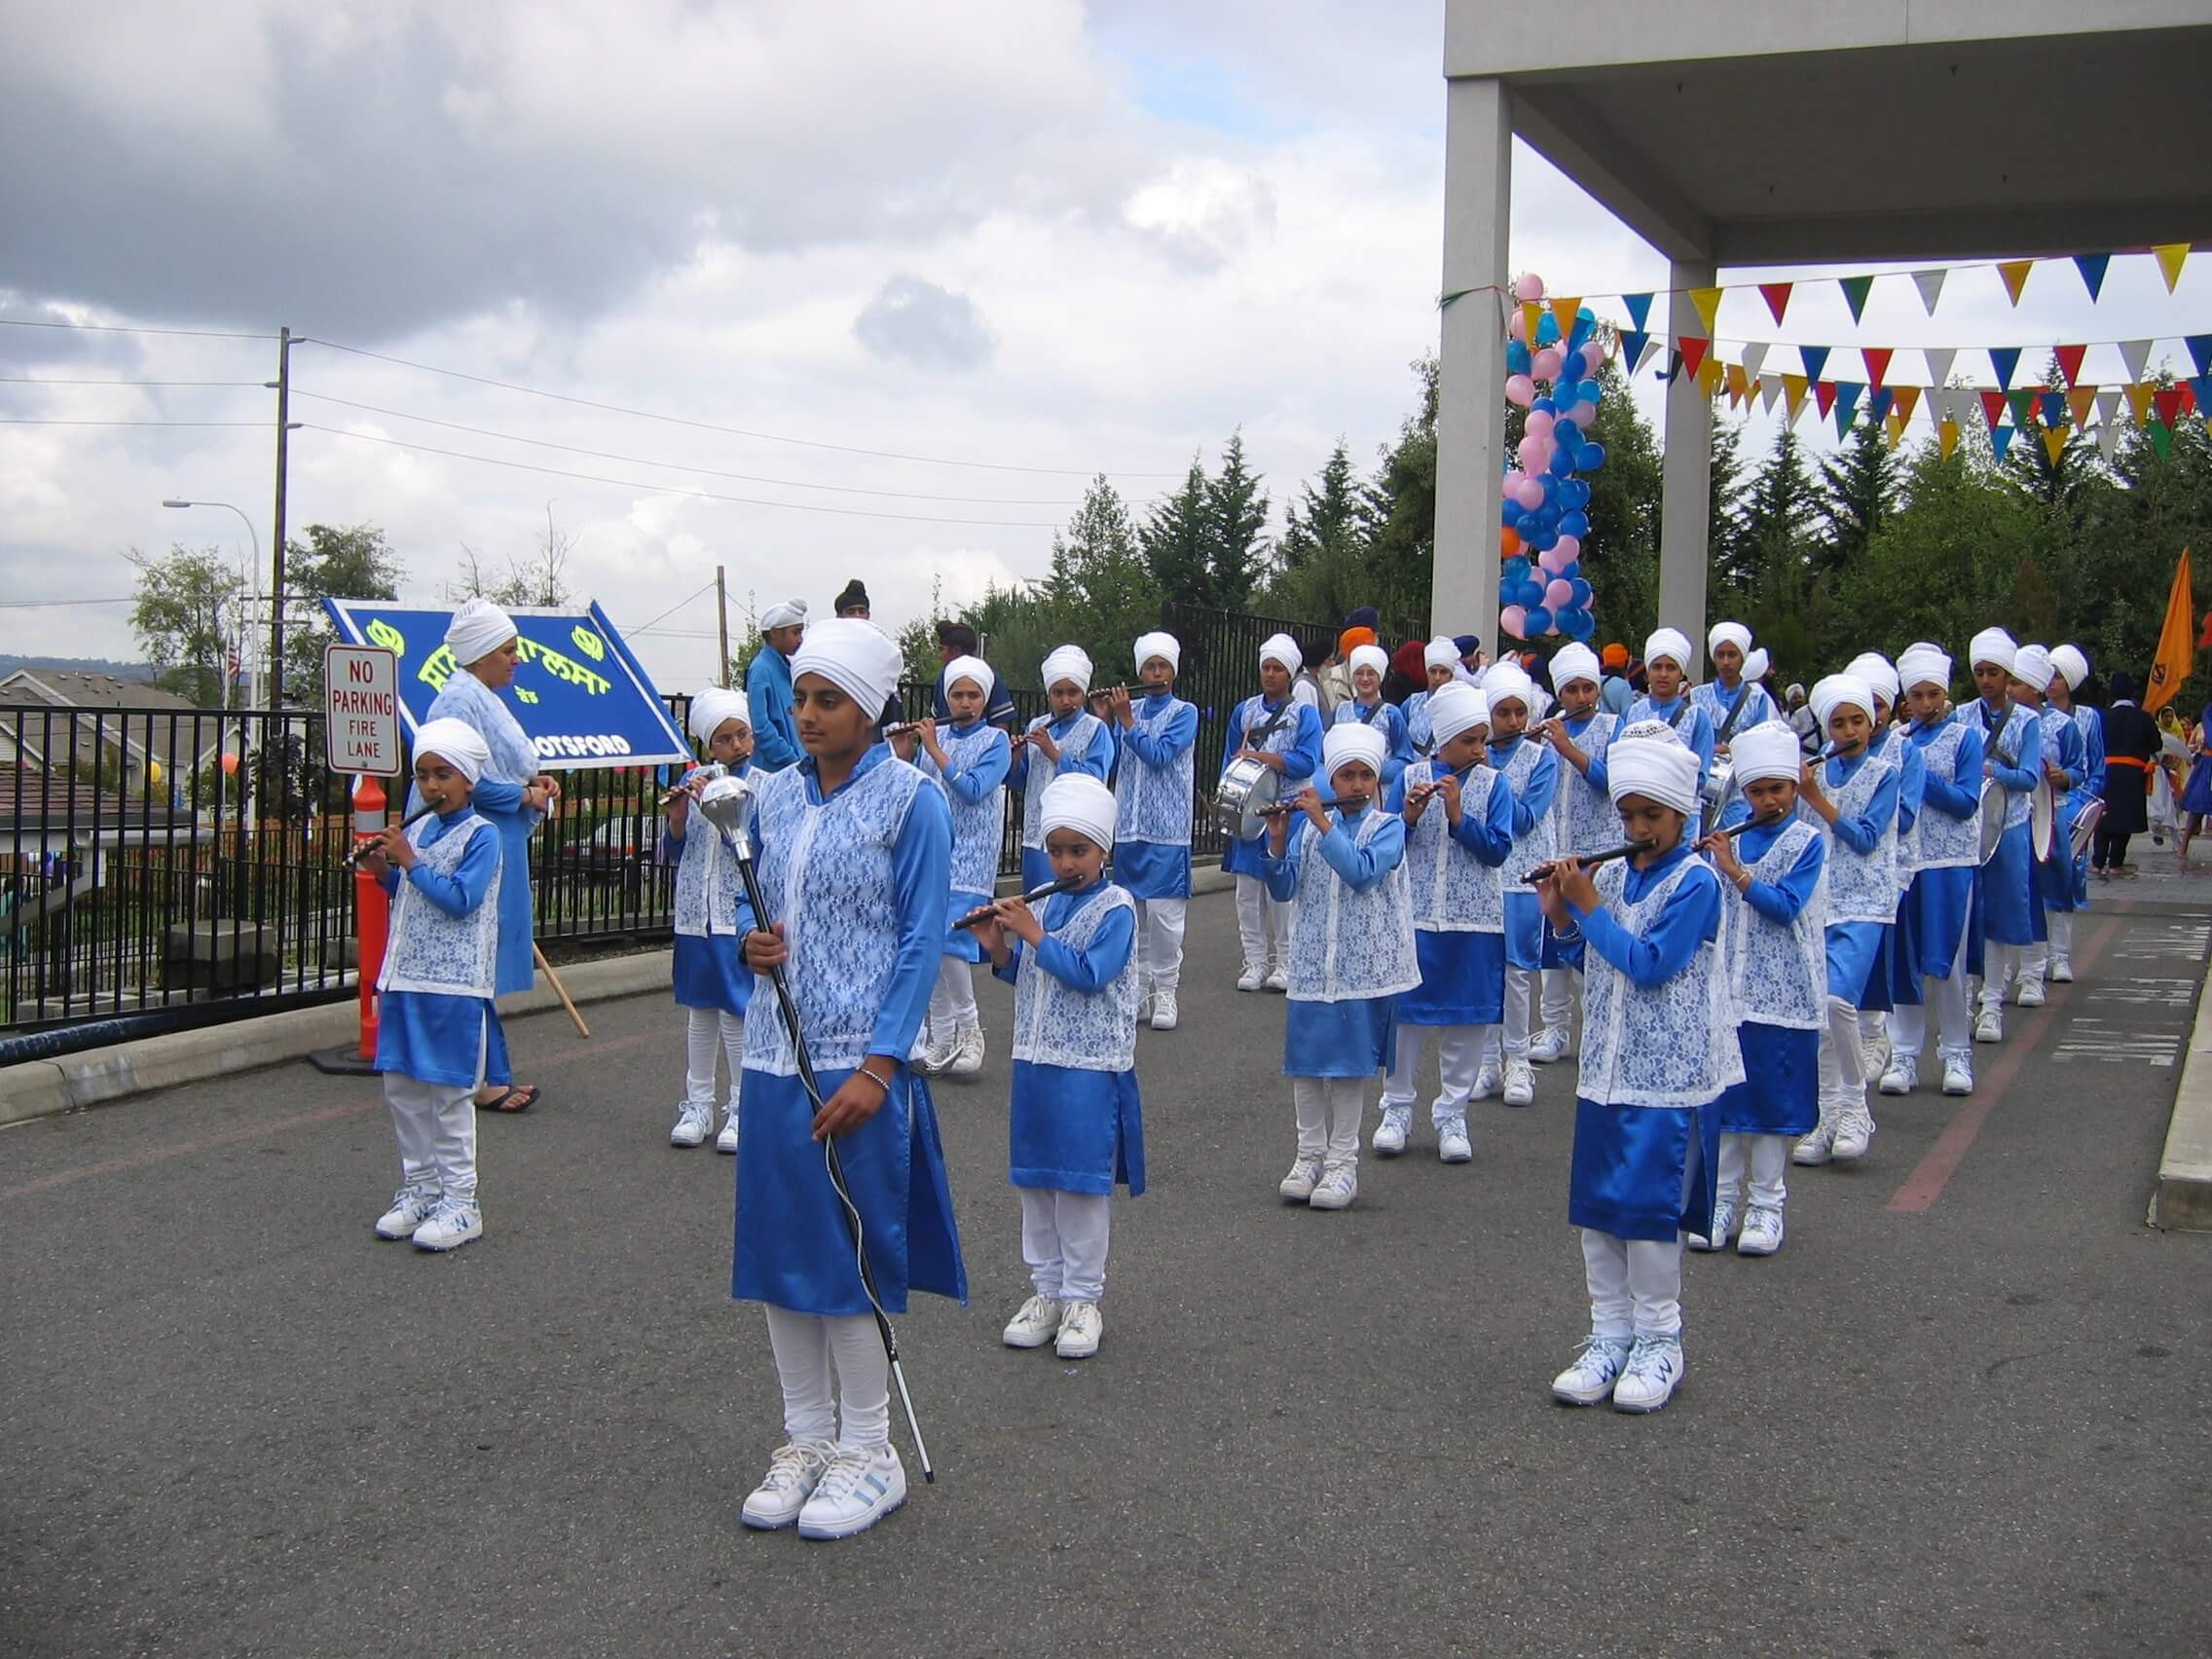 A band team read to perform at a Sikh parade